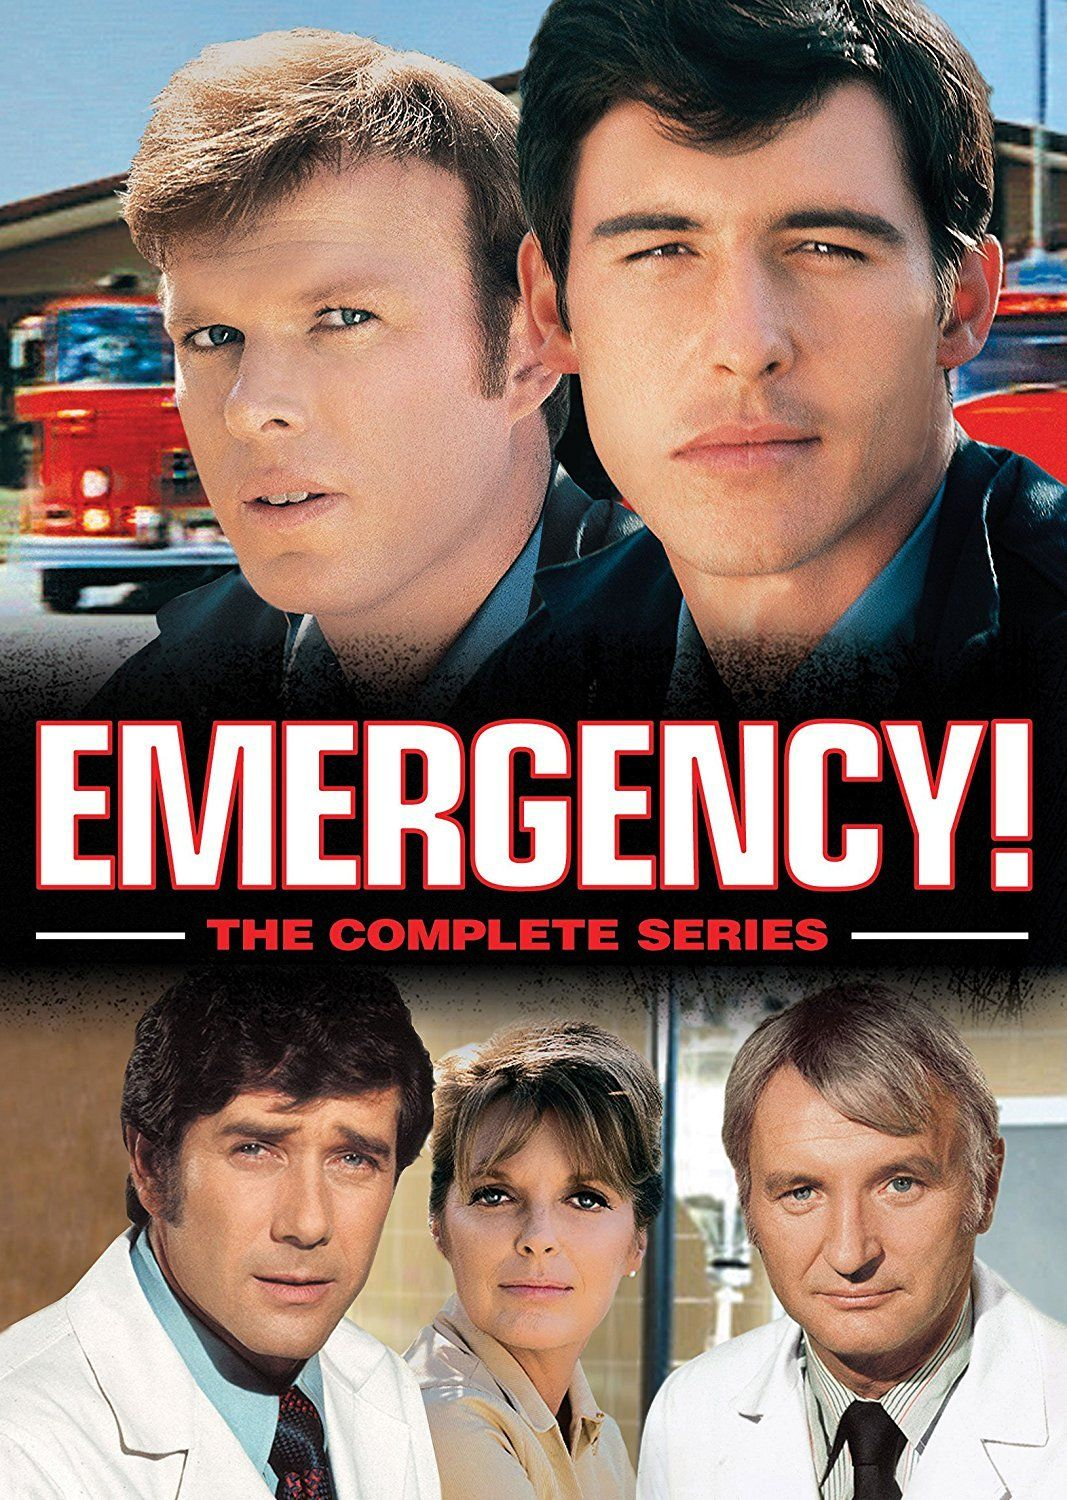 Emergency dvd series complete box set 1970s tv shows tv